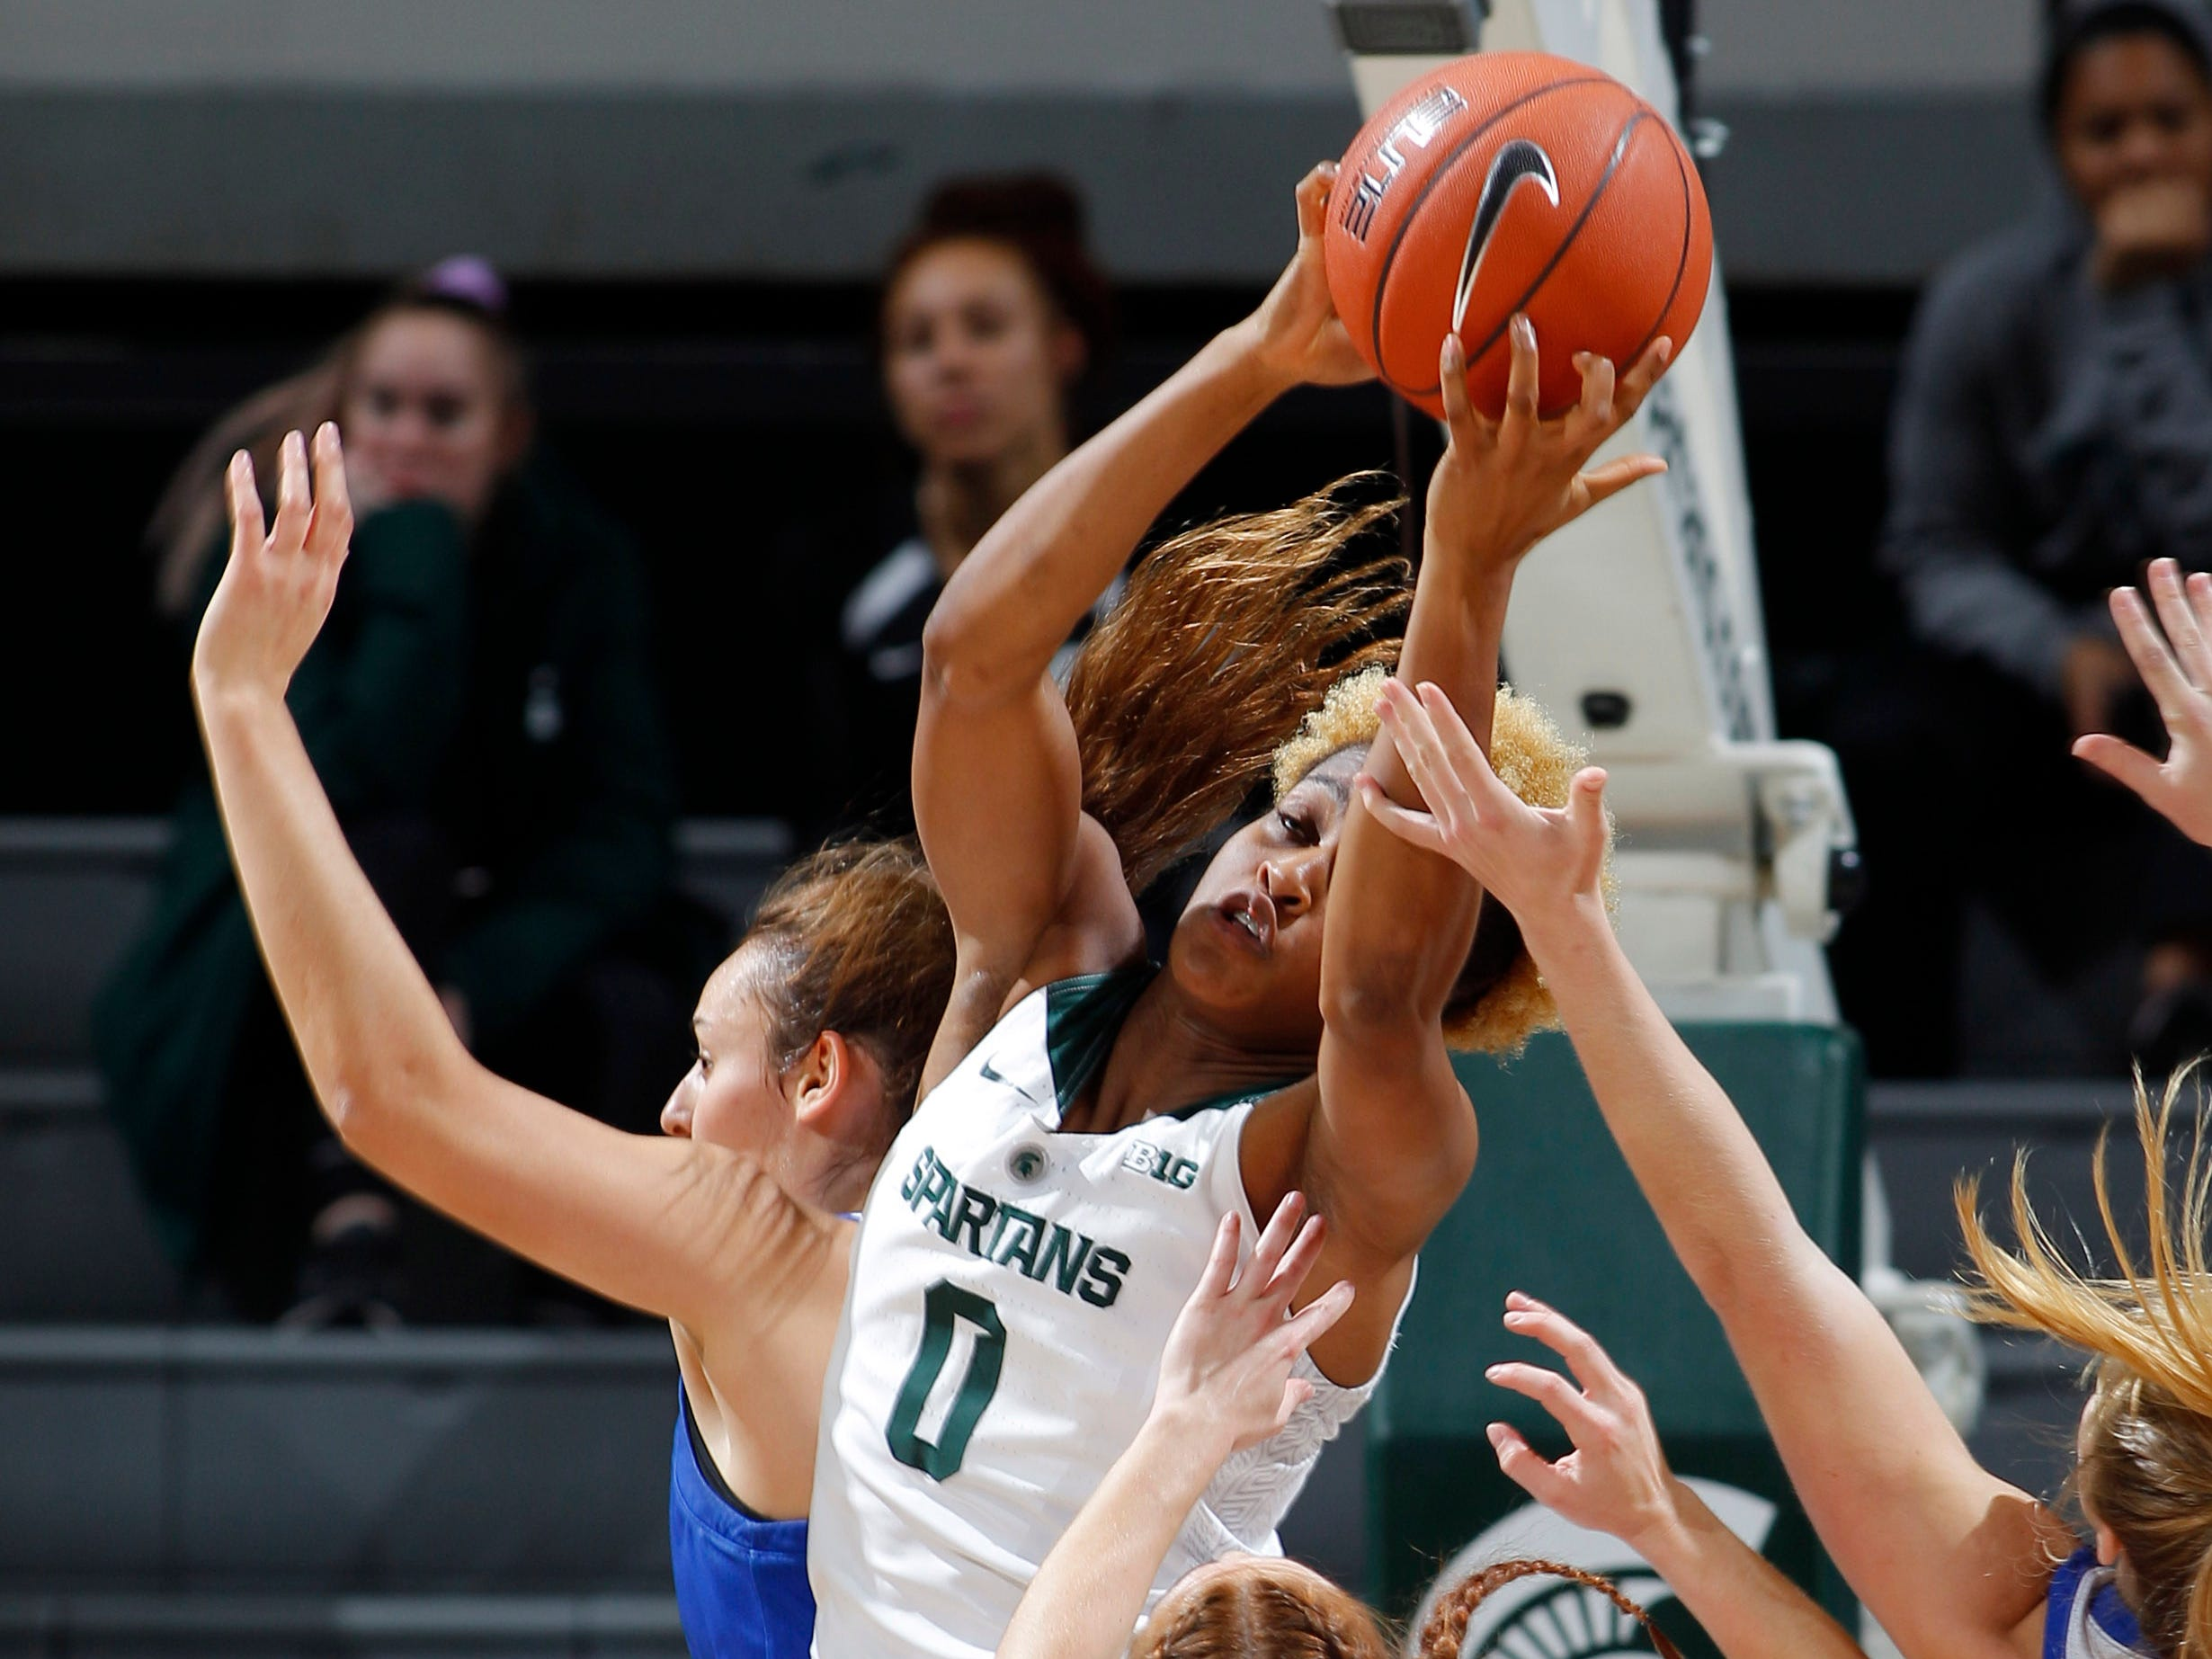 Michigan State's Shay Colley (0) grabs a rebound over Taryn McCutcheon (4) and Hillsdale's Hunter Stevens, left,, Thursday, Nov. 1, 2018, in East Lansing, Mich.